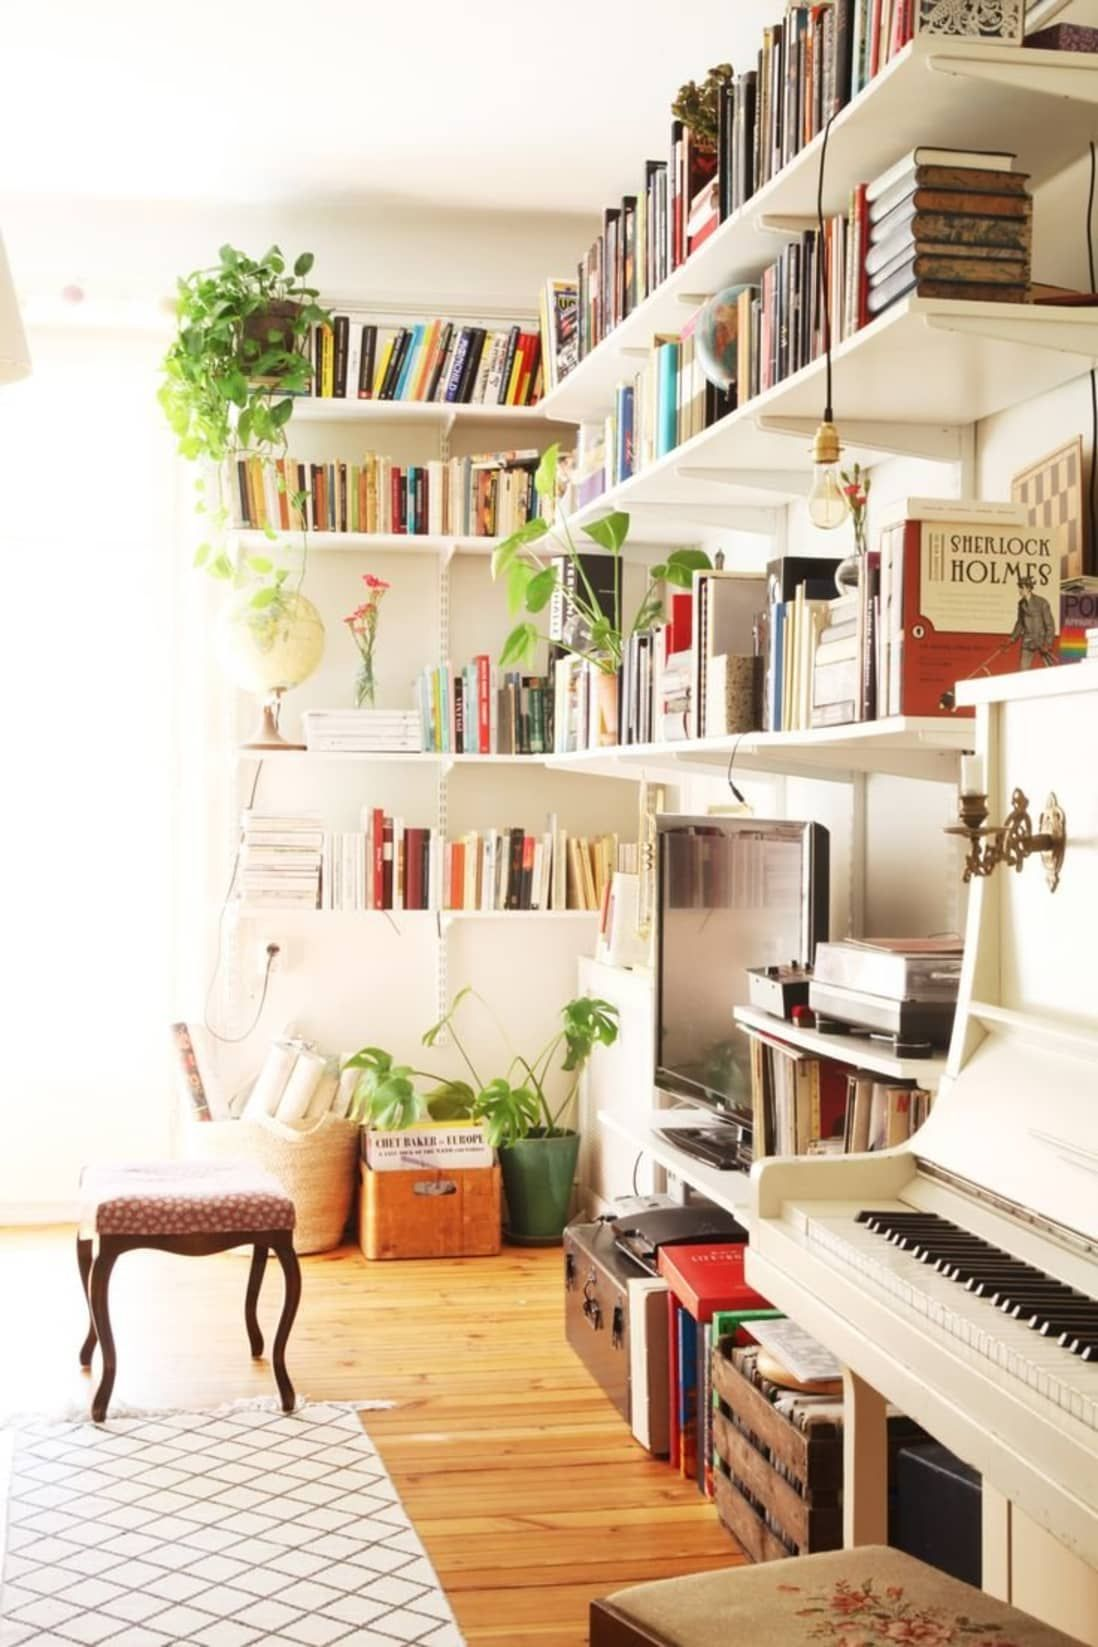 13 Ways To Decorate Around A Piano In 2020 Cozy Living Room Design Small Room Design Best Living Room Design #small #living #room #with #piano